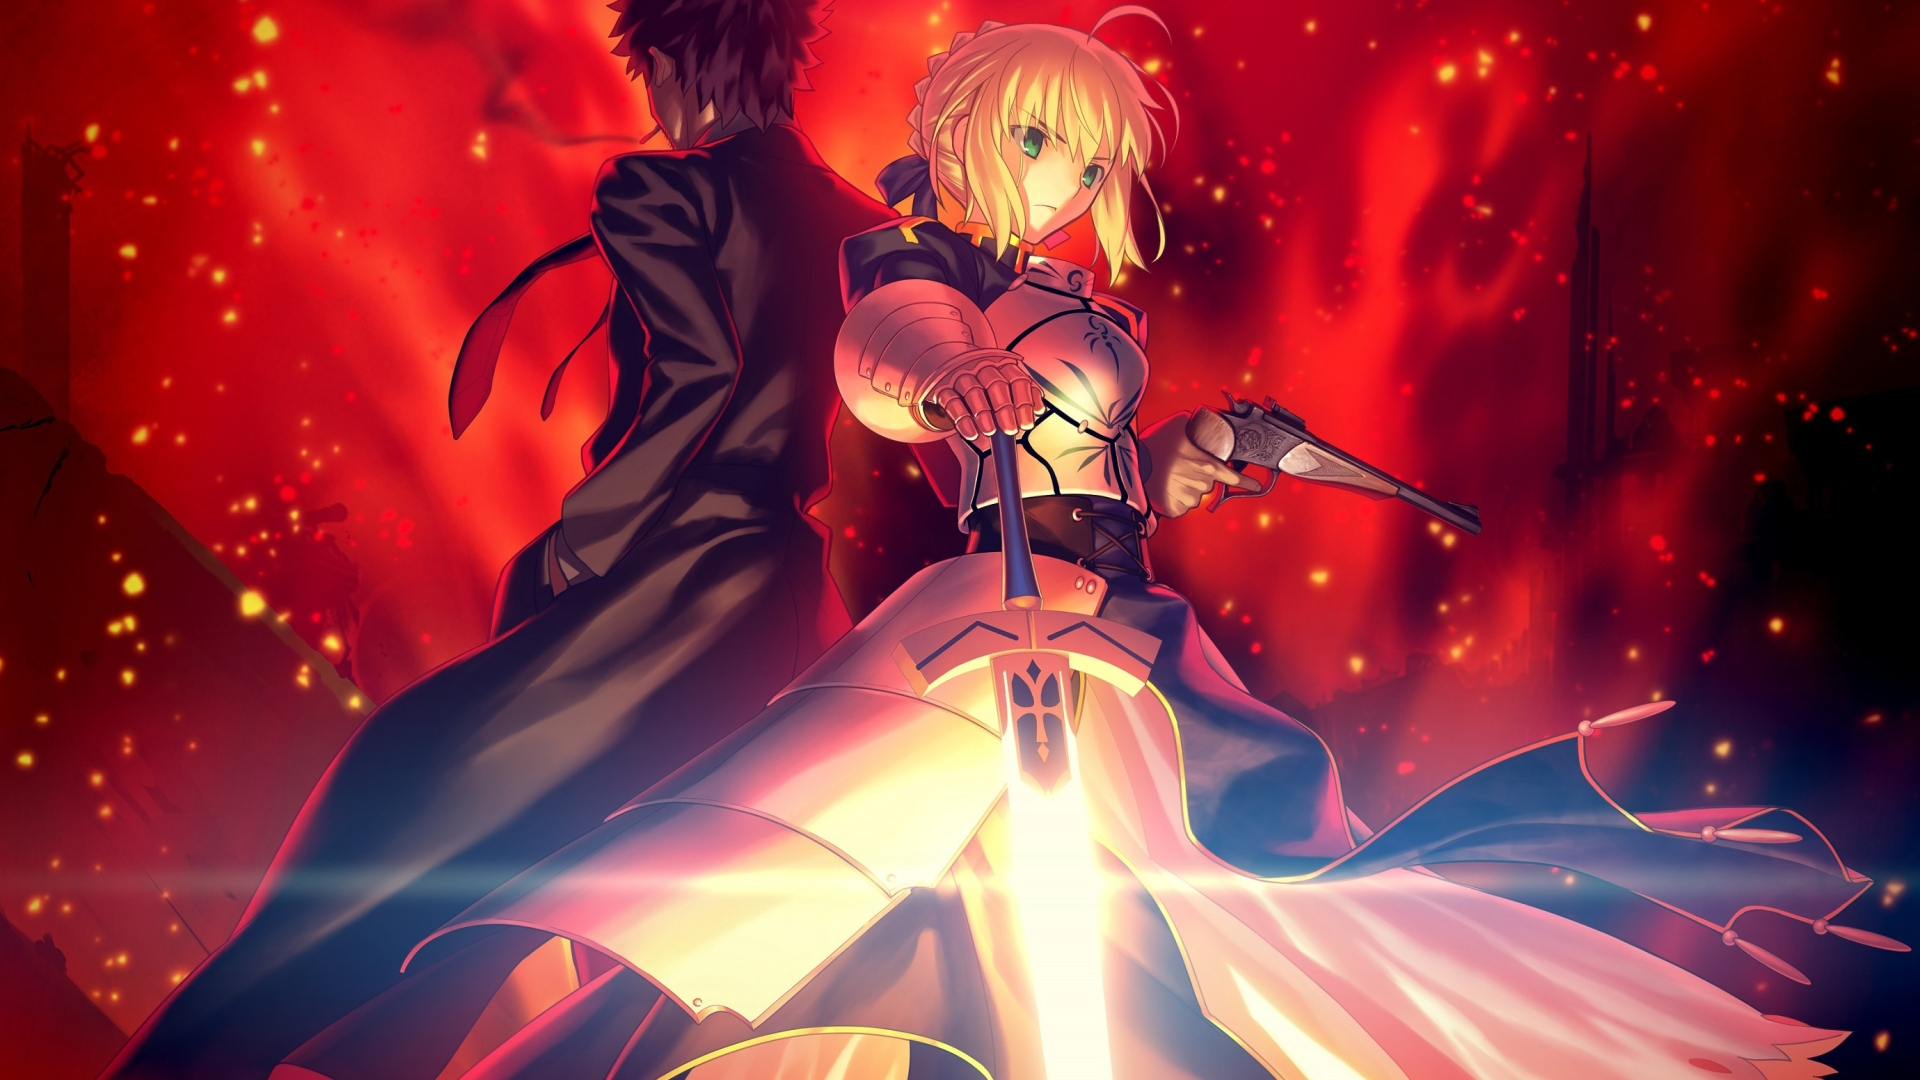 Download Saber Fate Grand Order Series 1280x2120 Resolution Full